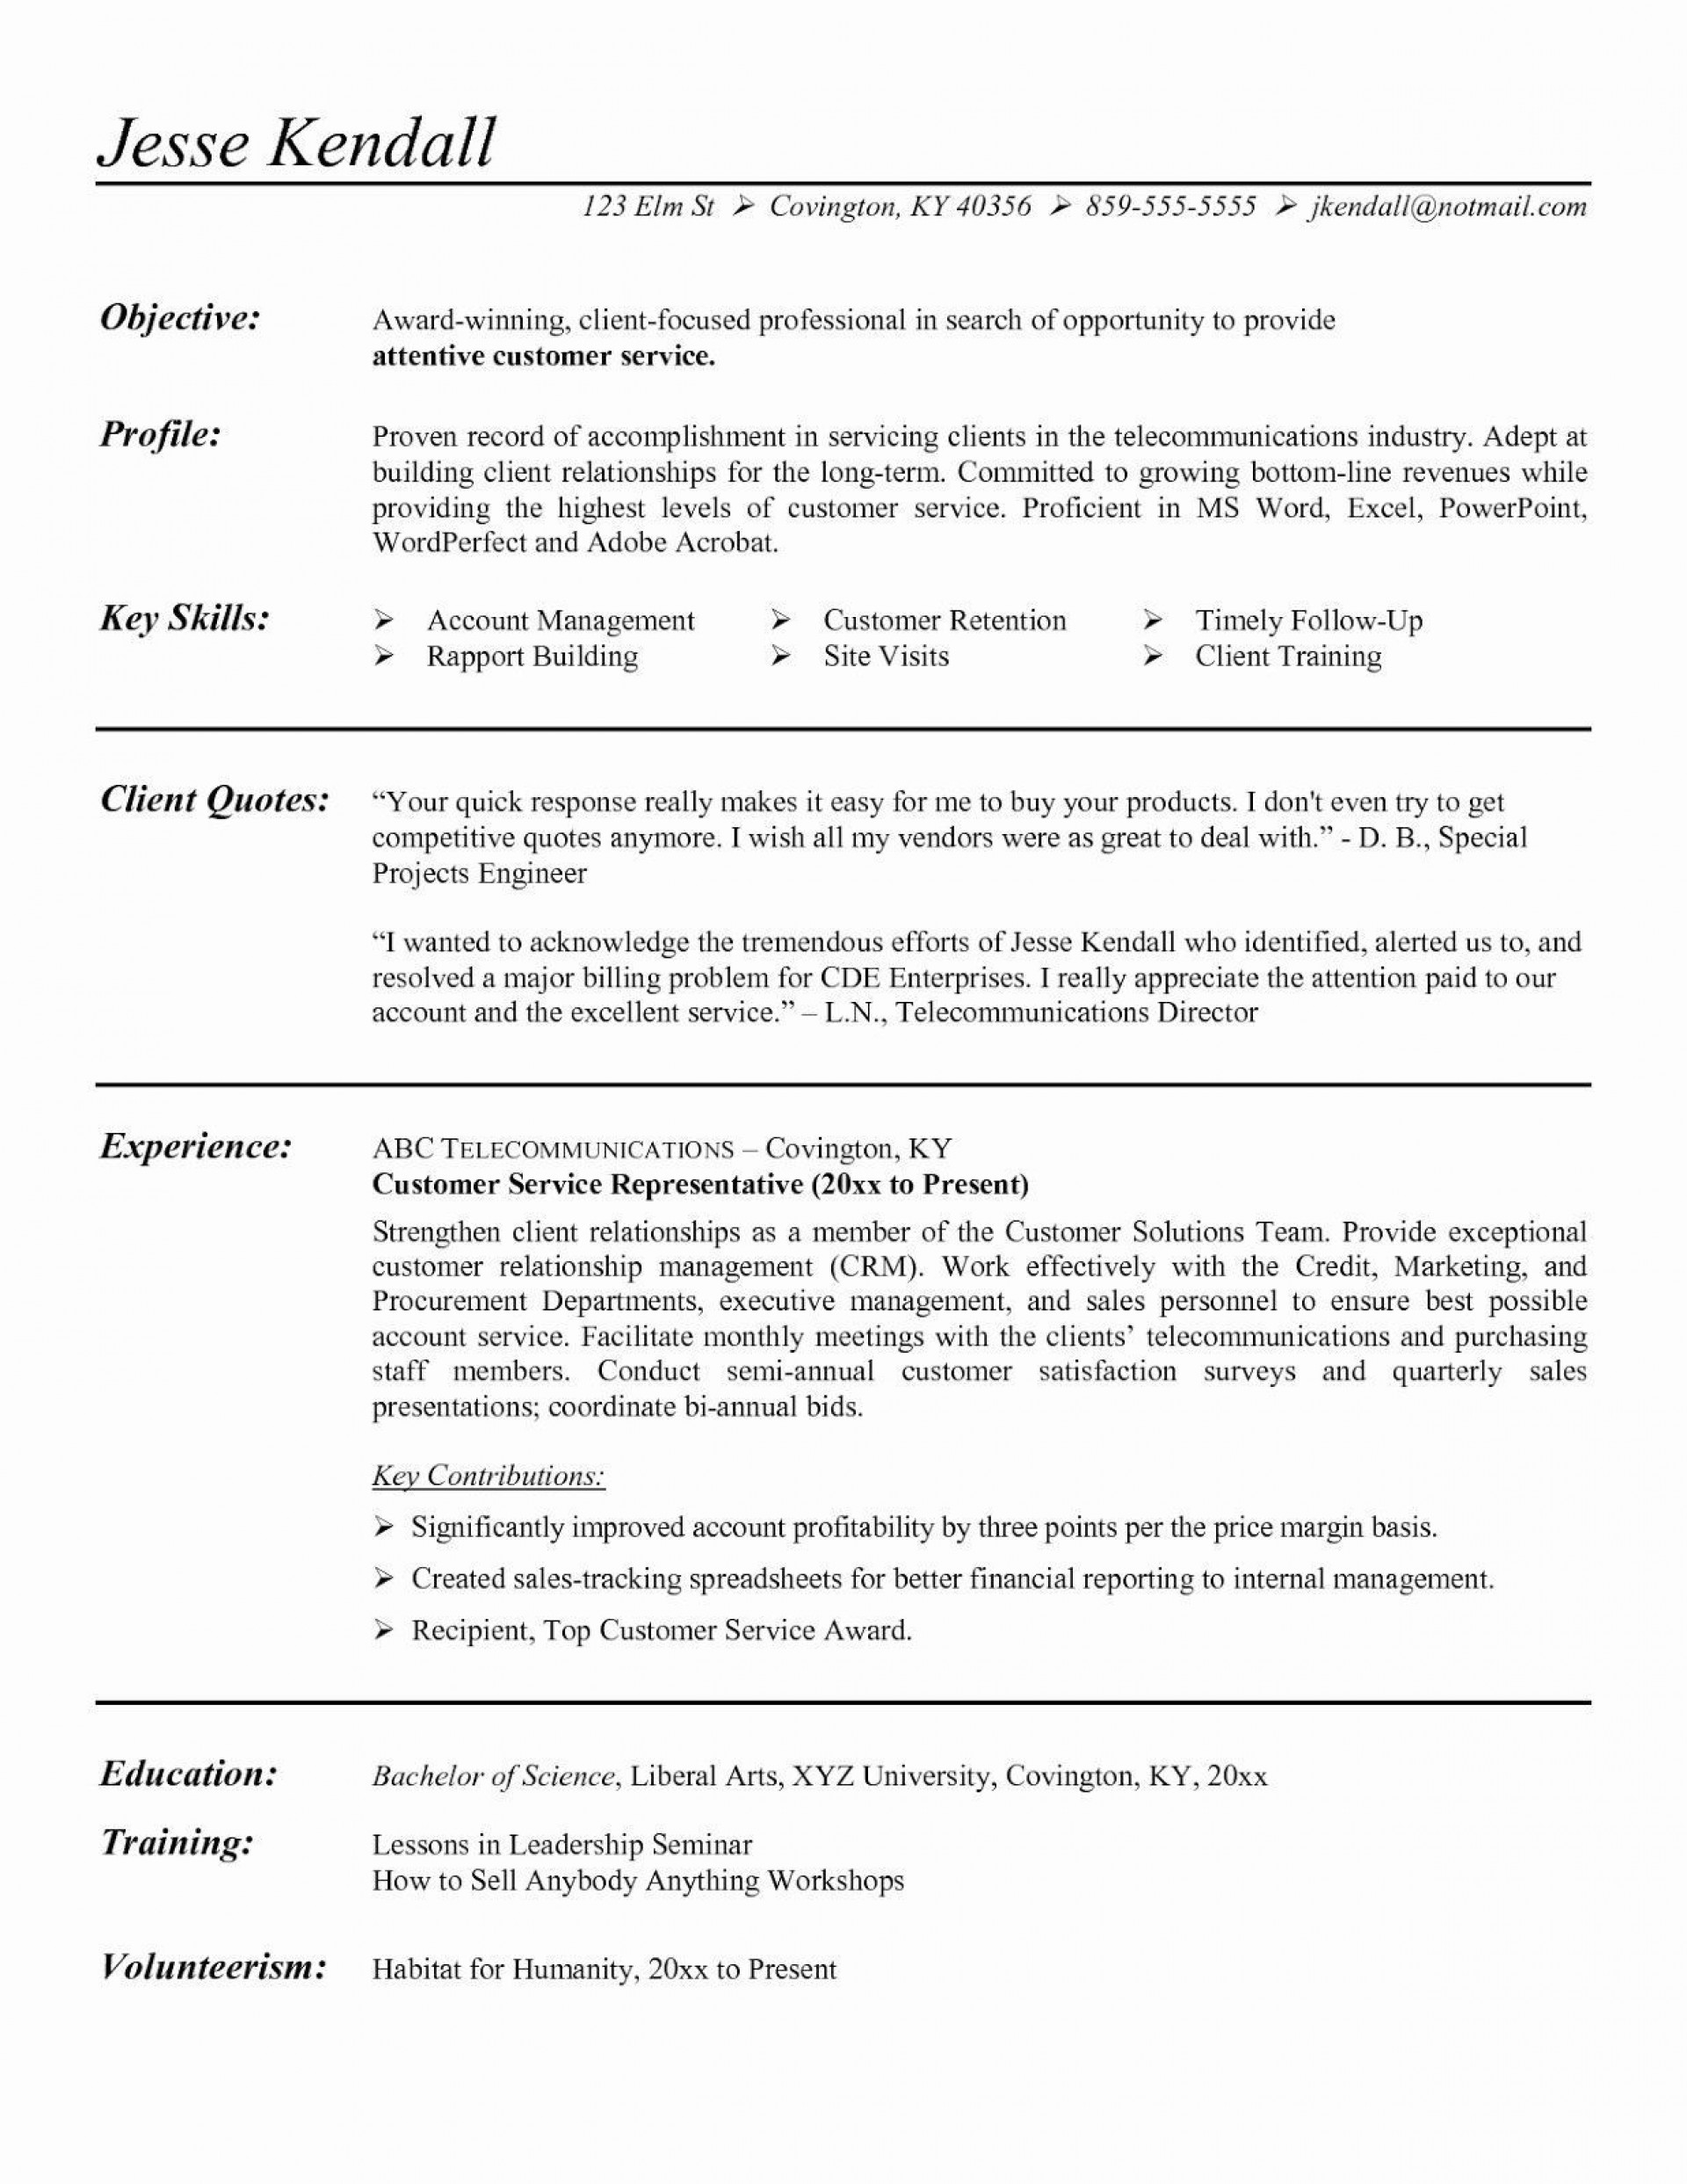 010 Wondrou Customer Service Resume Template Inspiration  Cv1920